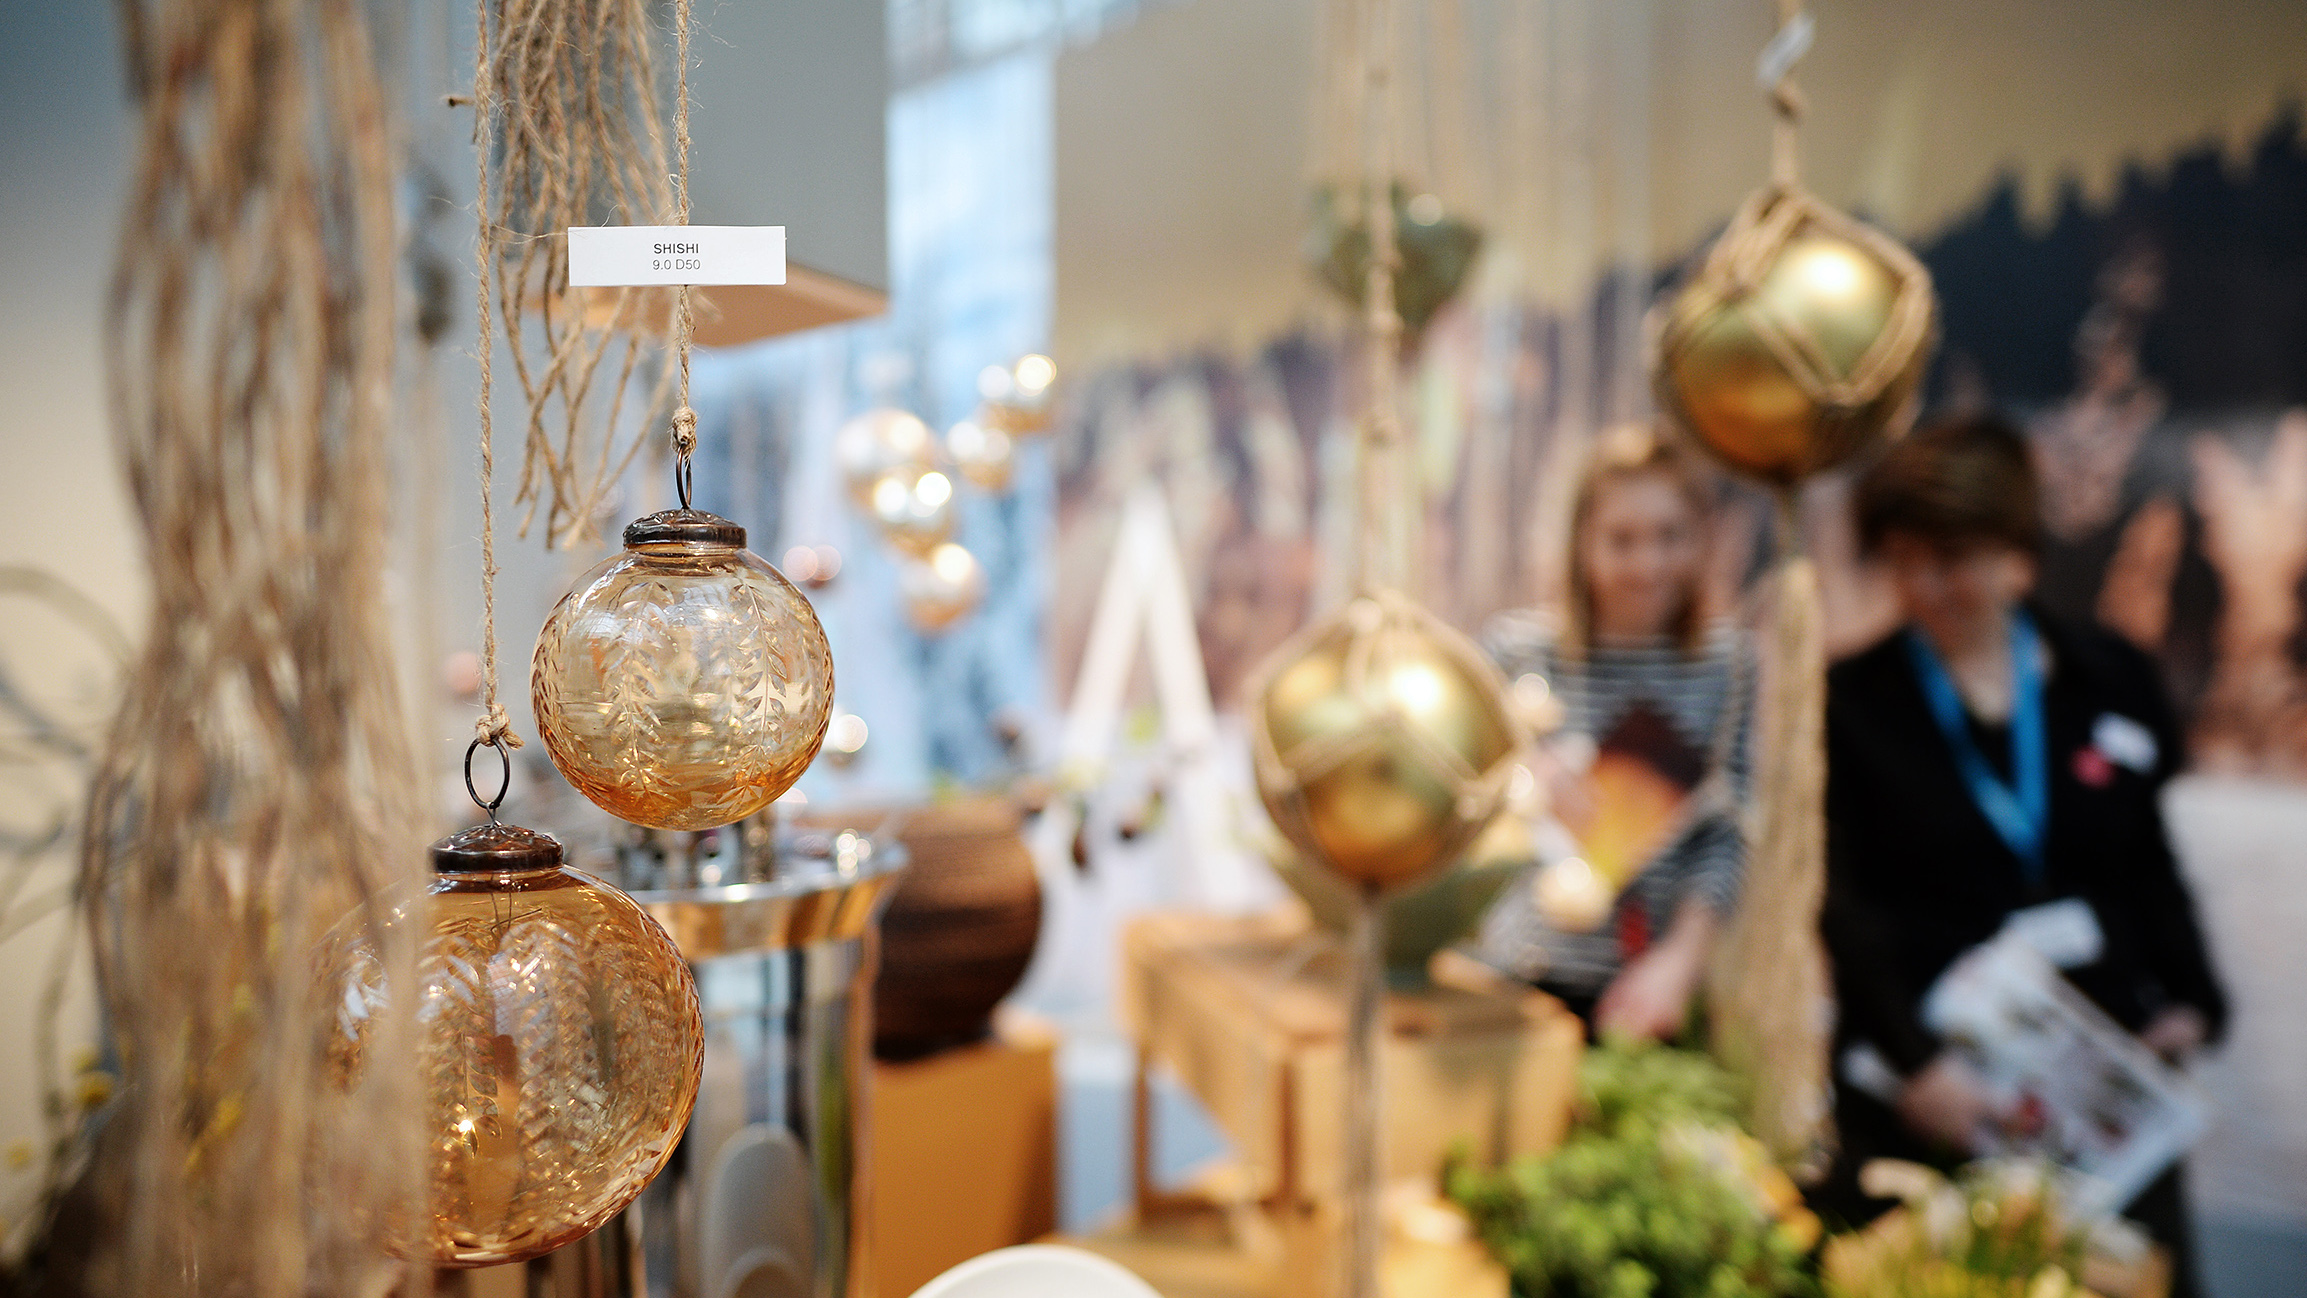 Christmasworld: International Trade Fair for Seasonal and Festive ...